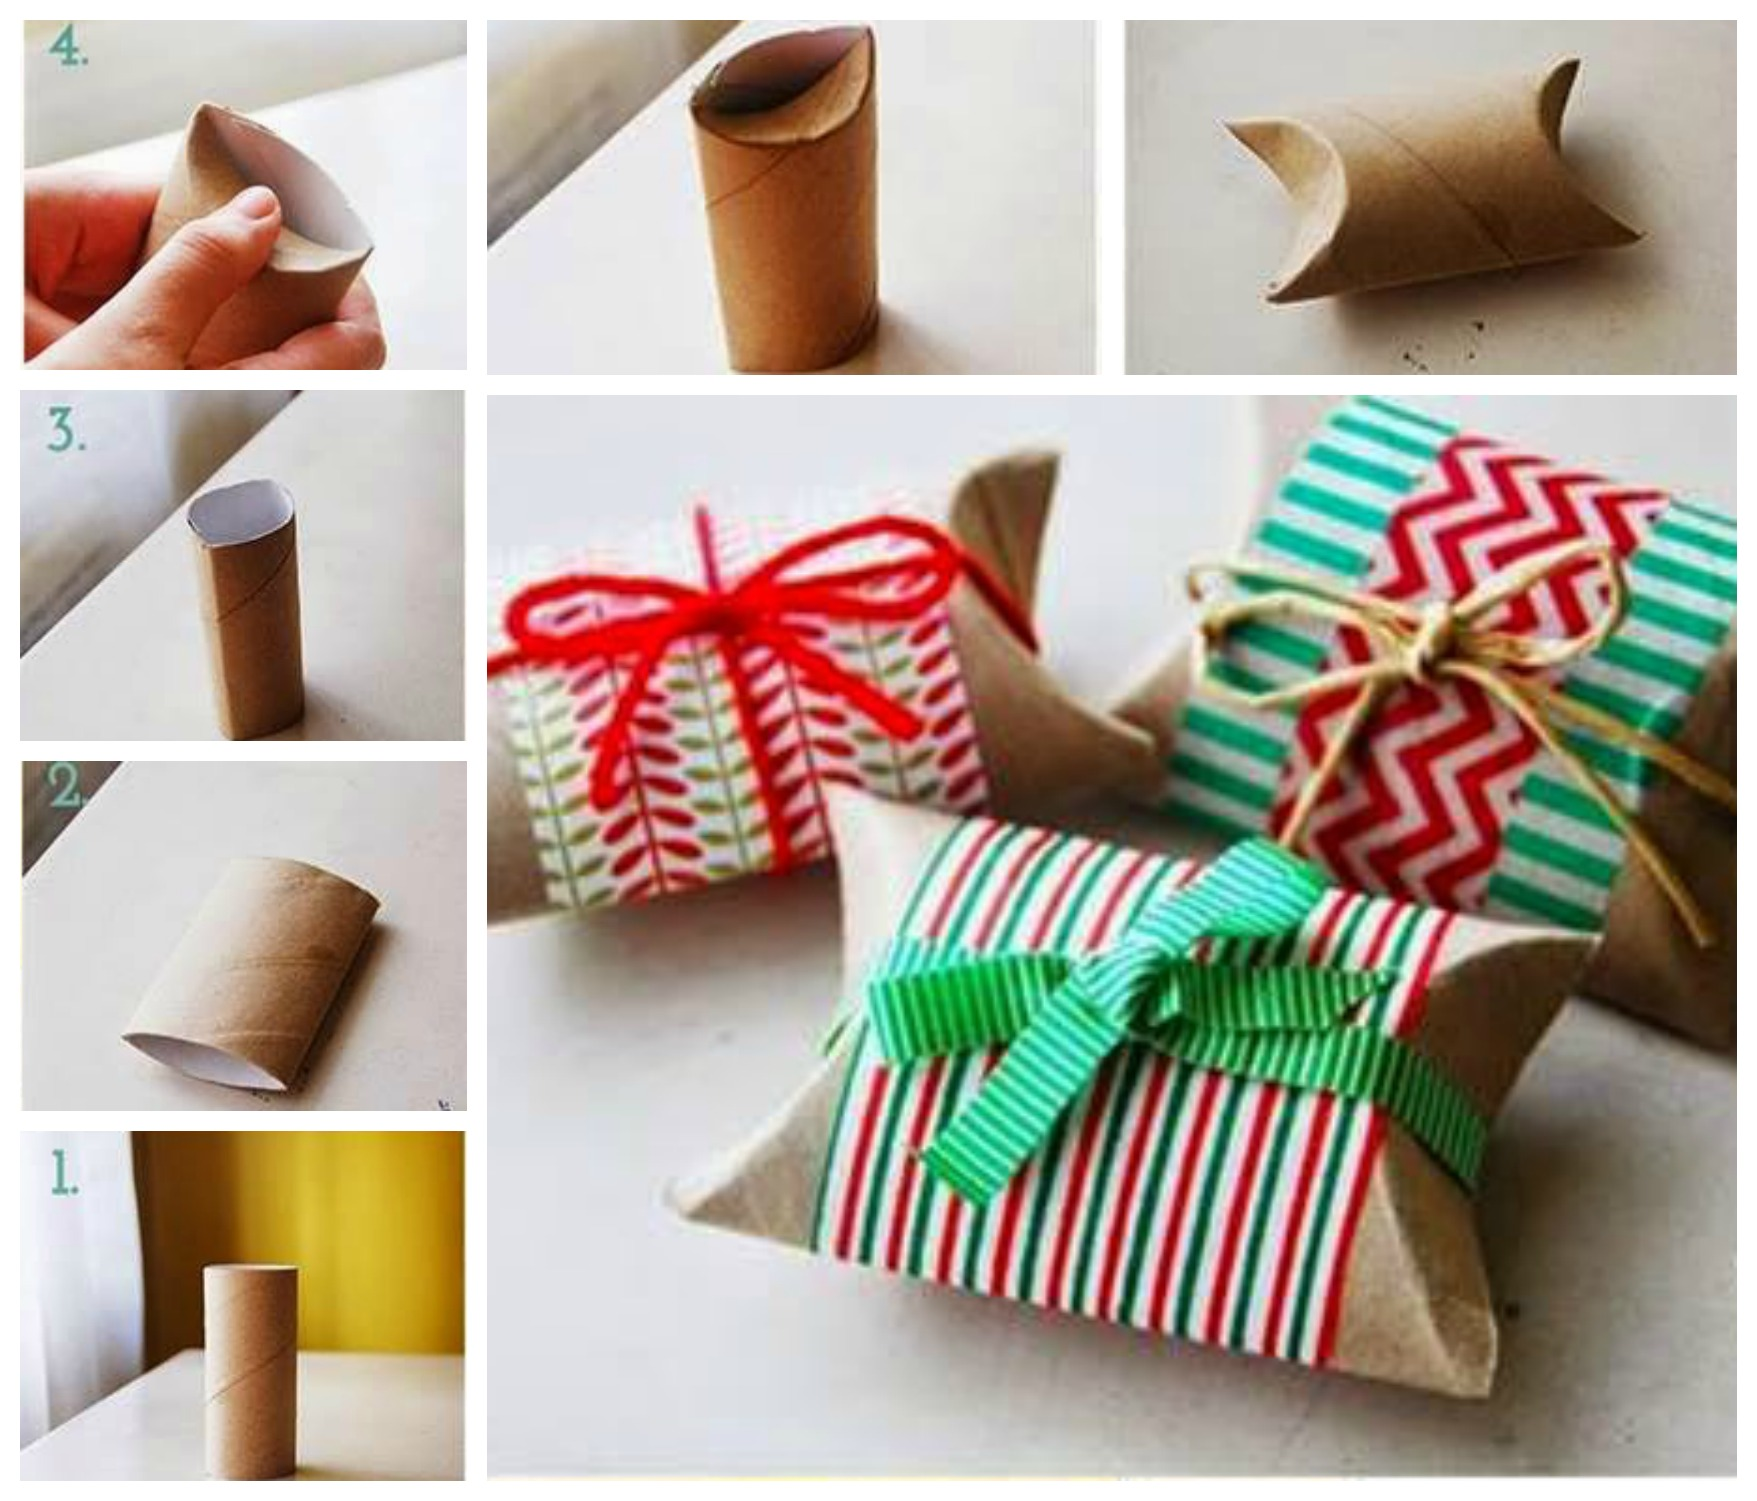 Fun finds friday including christmas fun food craft ideas diy toilet paper roll gift wrapping for christmas jeuxipadfo Images